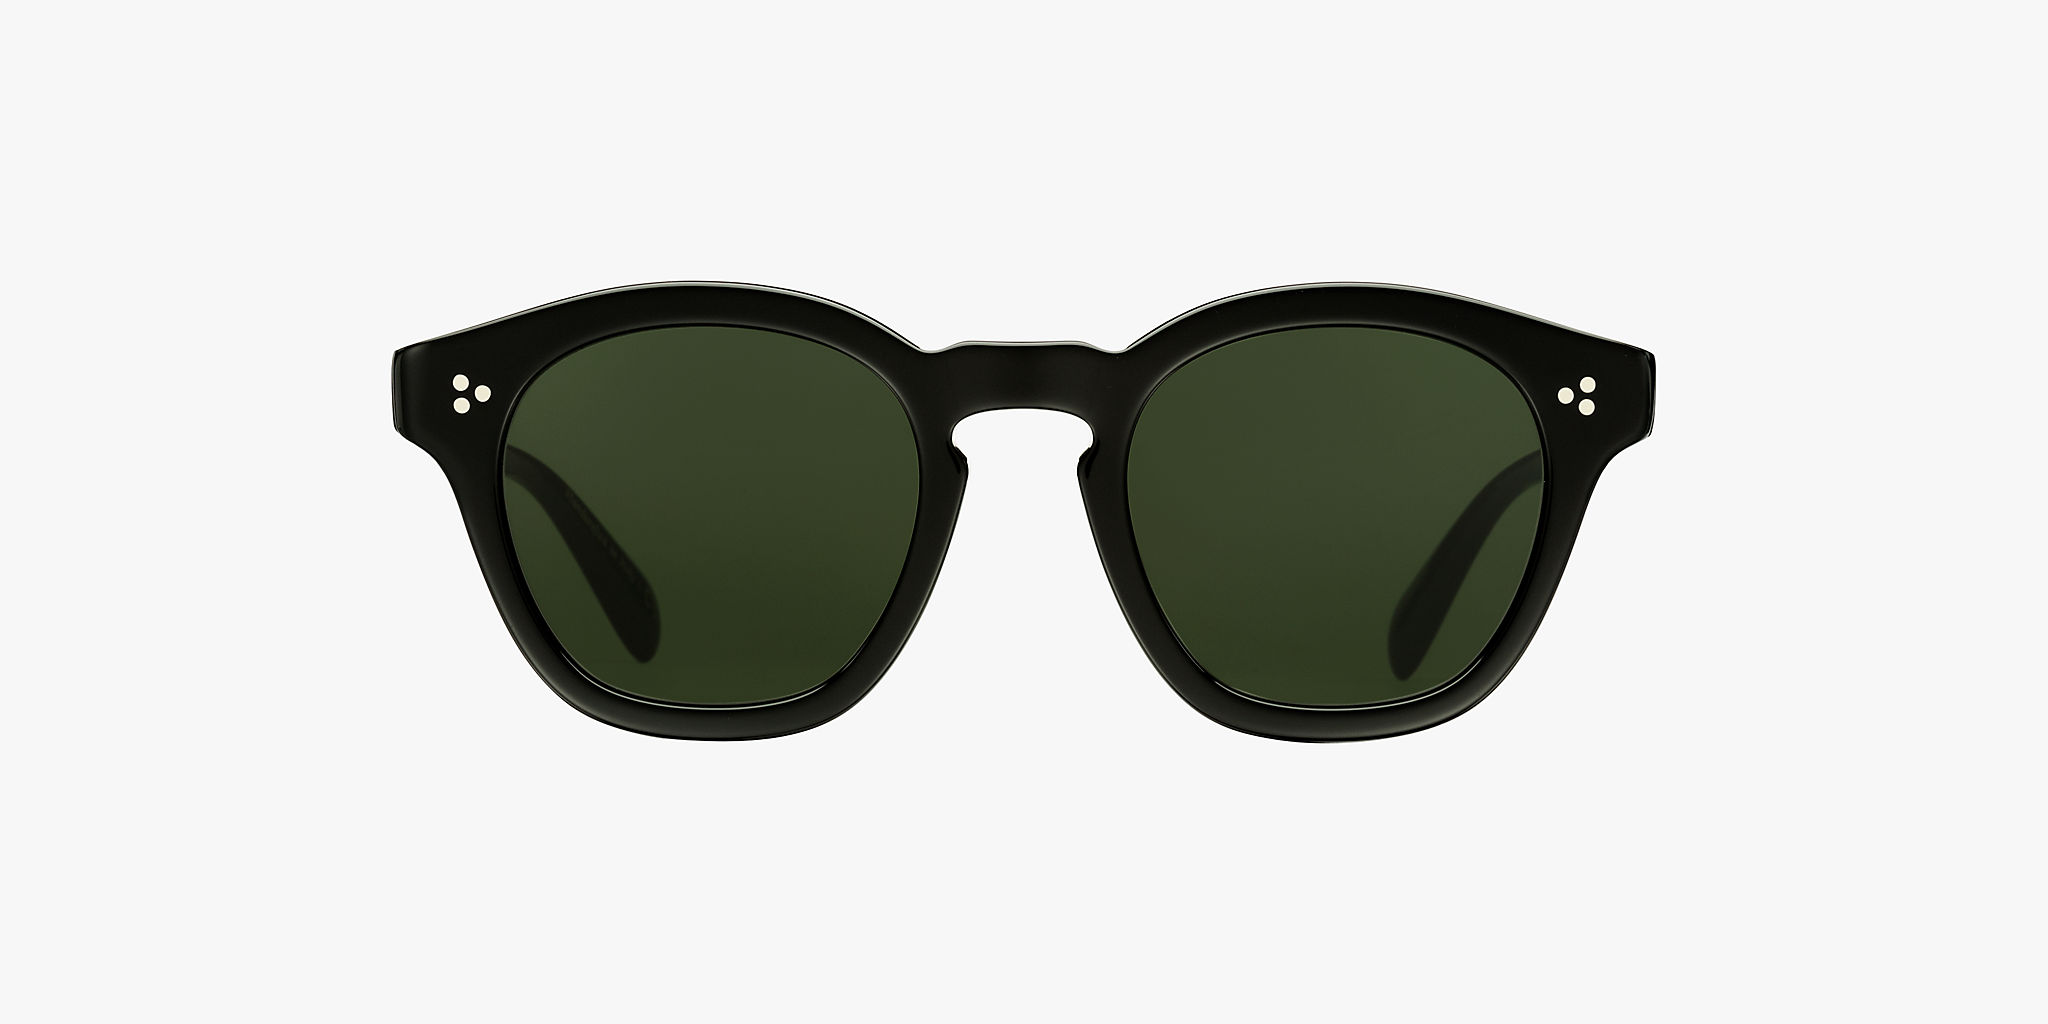 903ad161f5d Sun OV5382SU - Black - Green - Acetate | Oliver Peoples USA